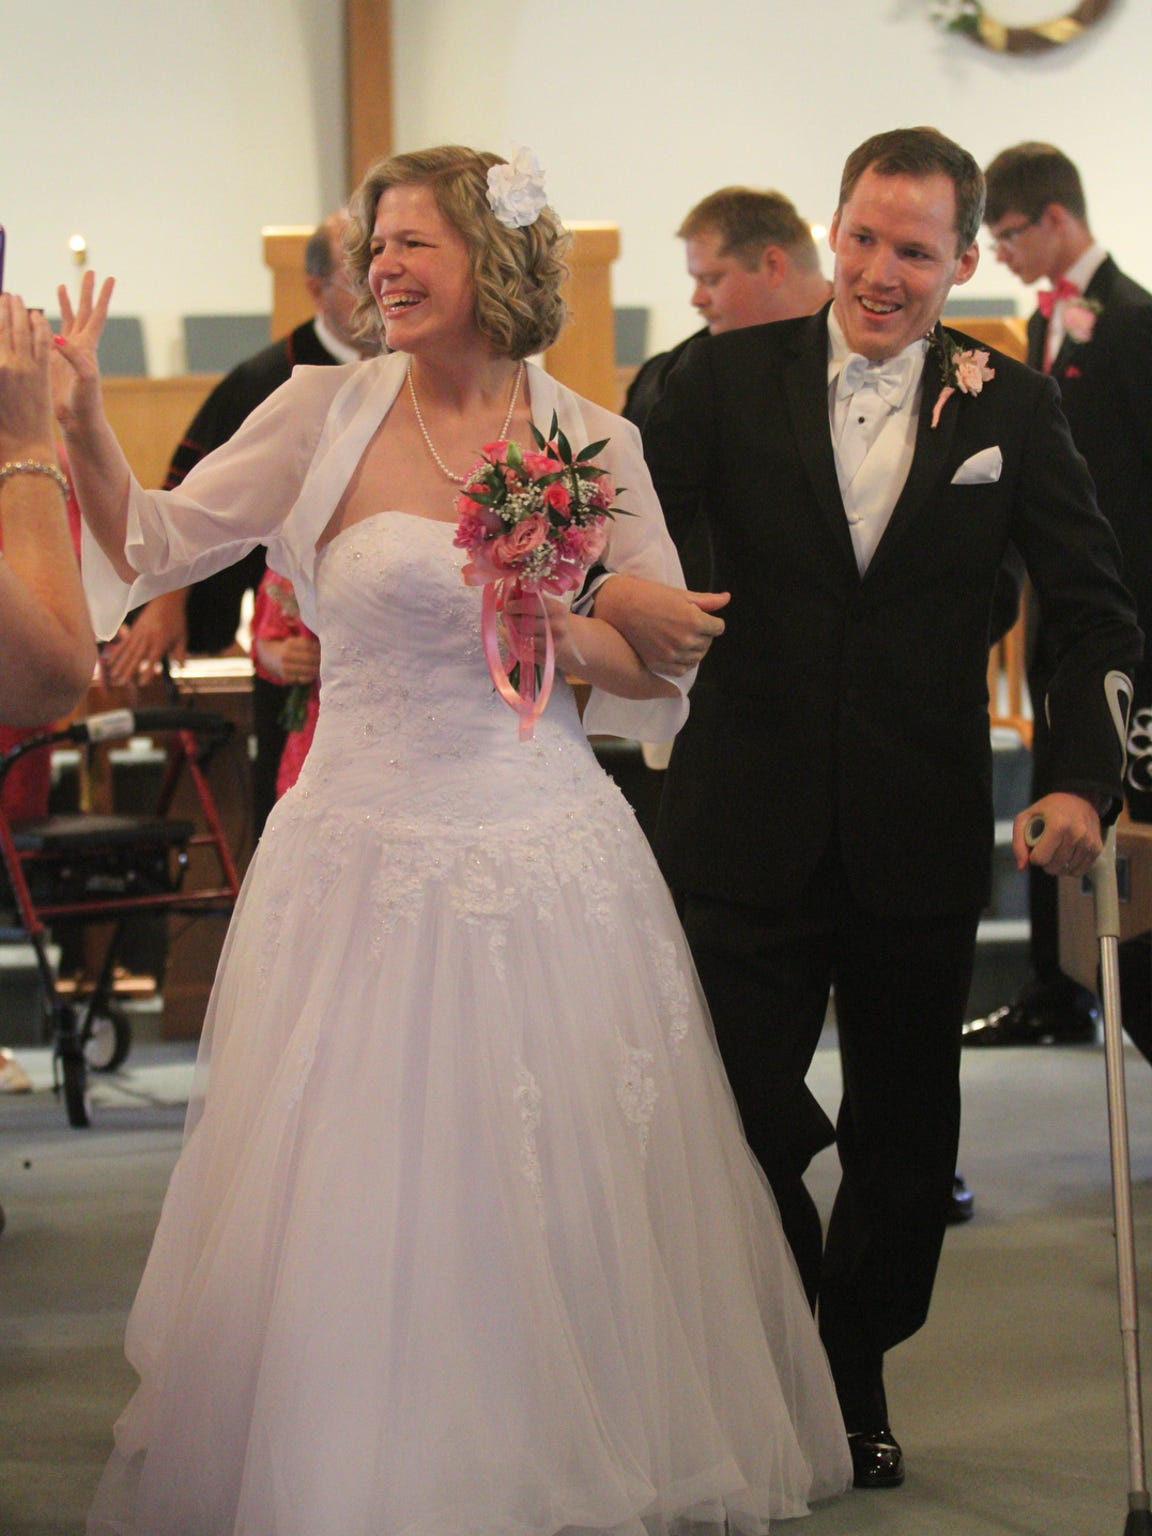 Randy and Melissa were married on May 16, 2015, in